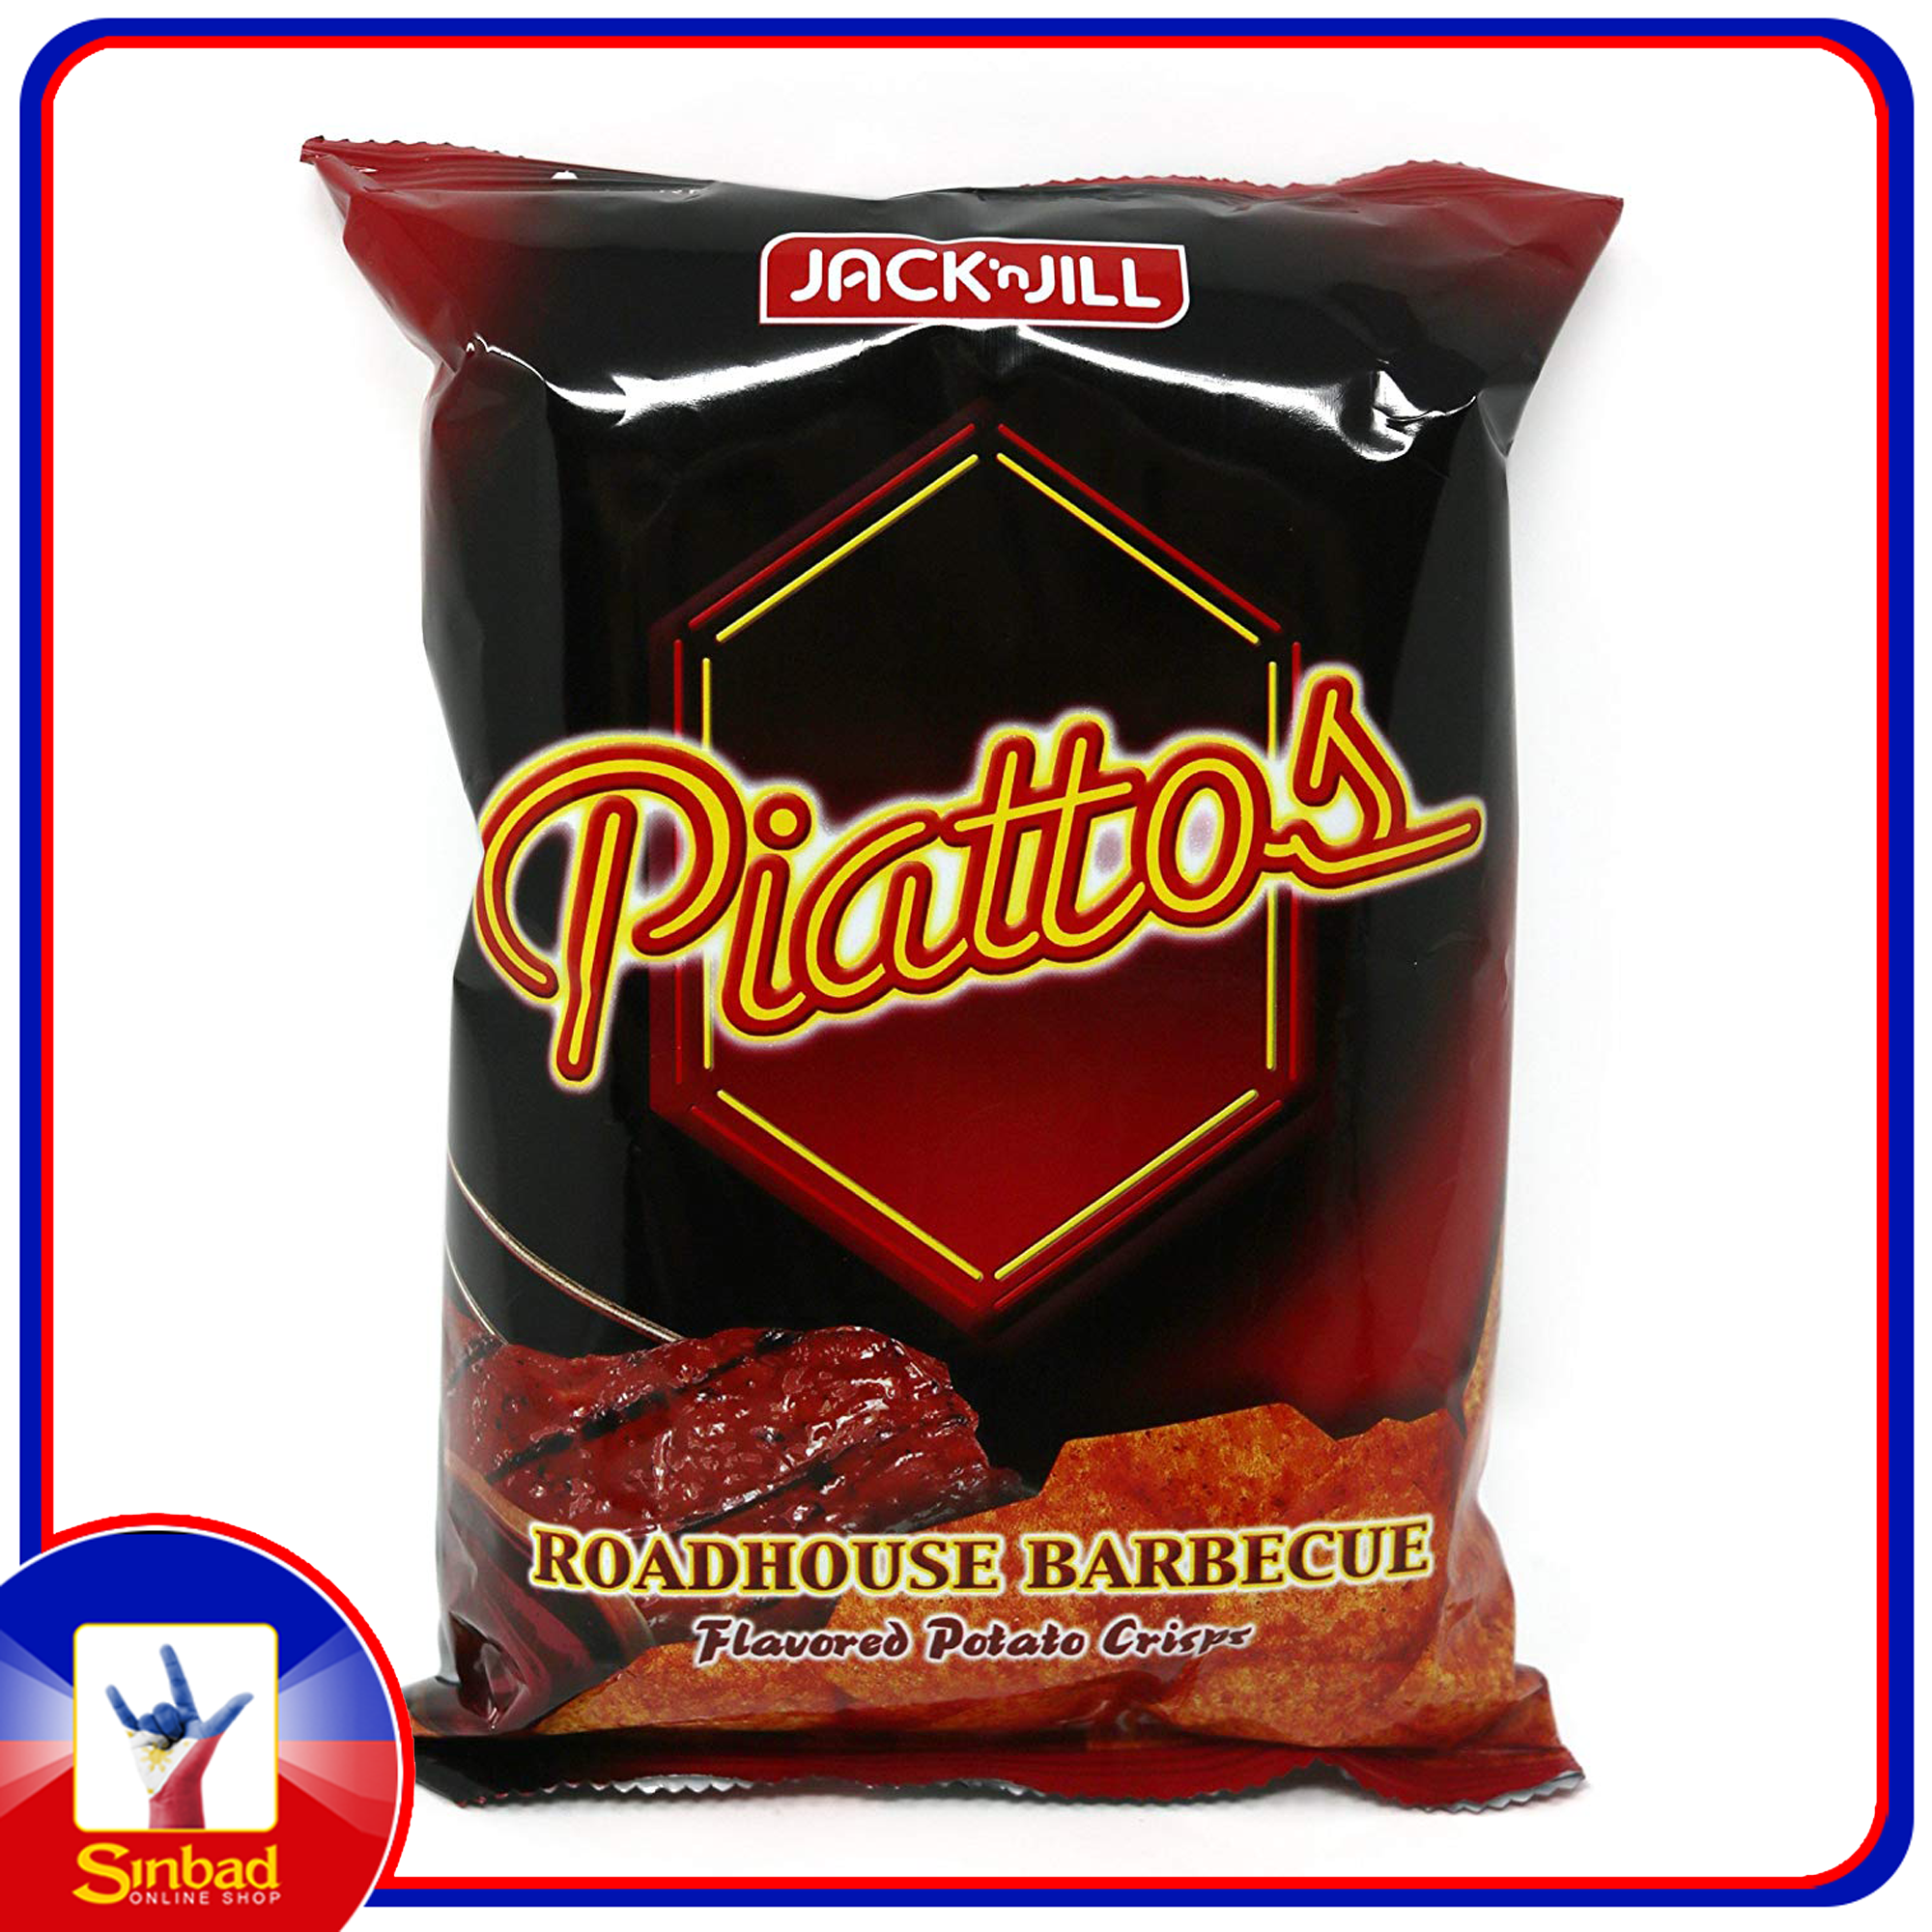 Jack N' Jill Piattos ROADHOUSE BARBECUE 85g